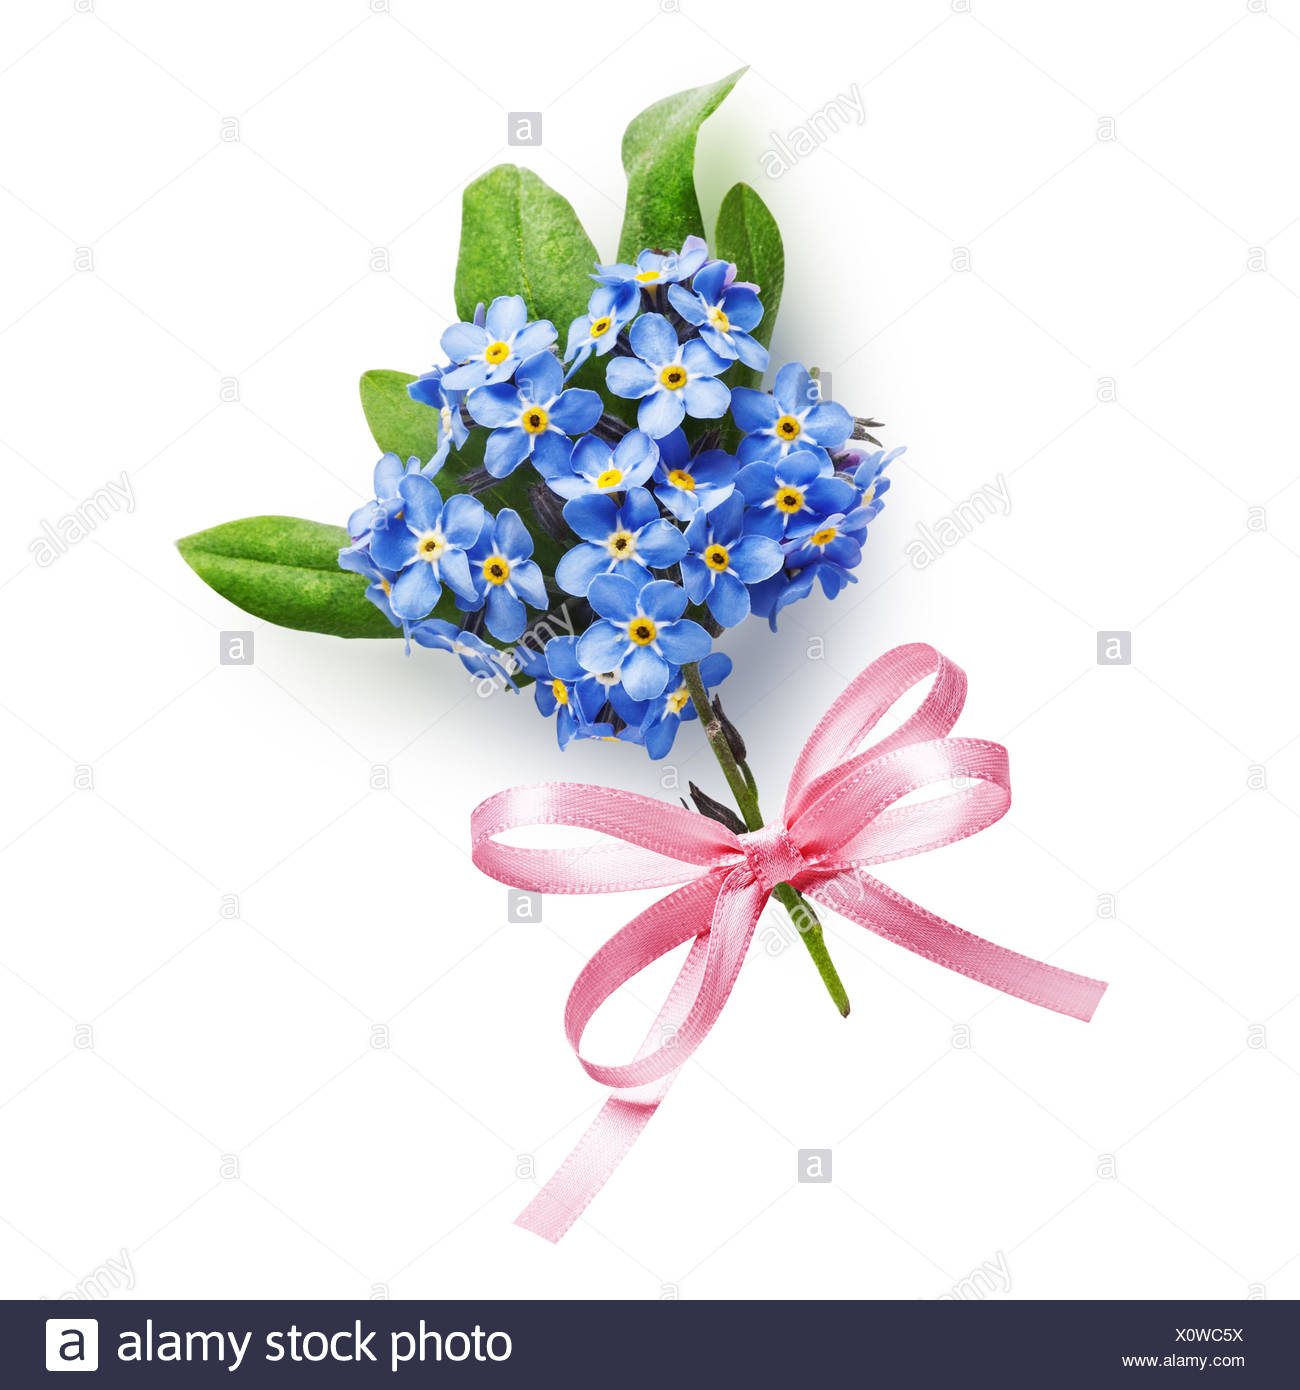 Bunch Of Small Blue Forget Me Not Flowers With Pink Bow Ribbon